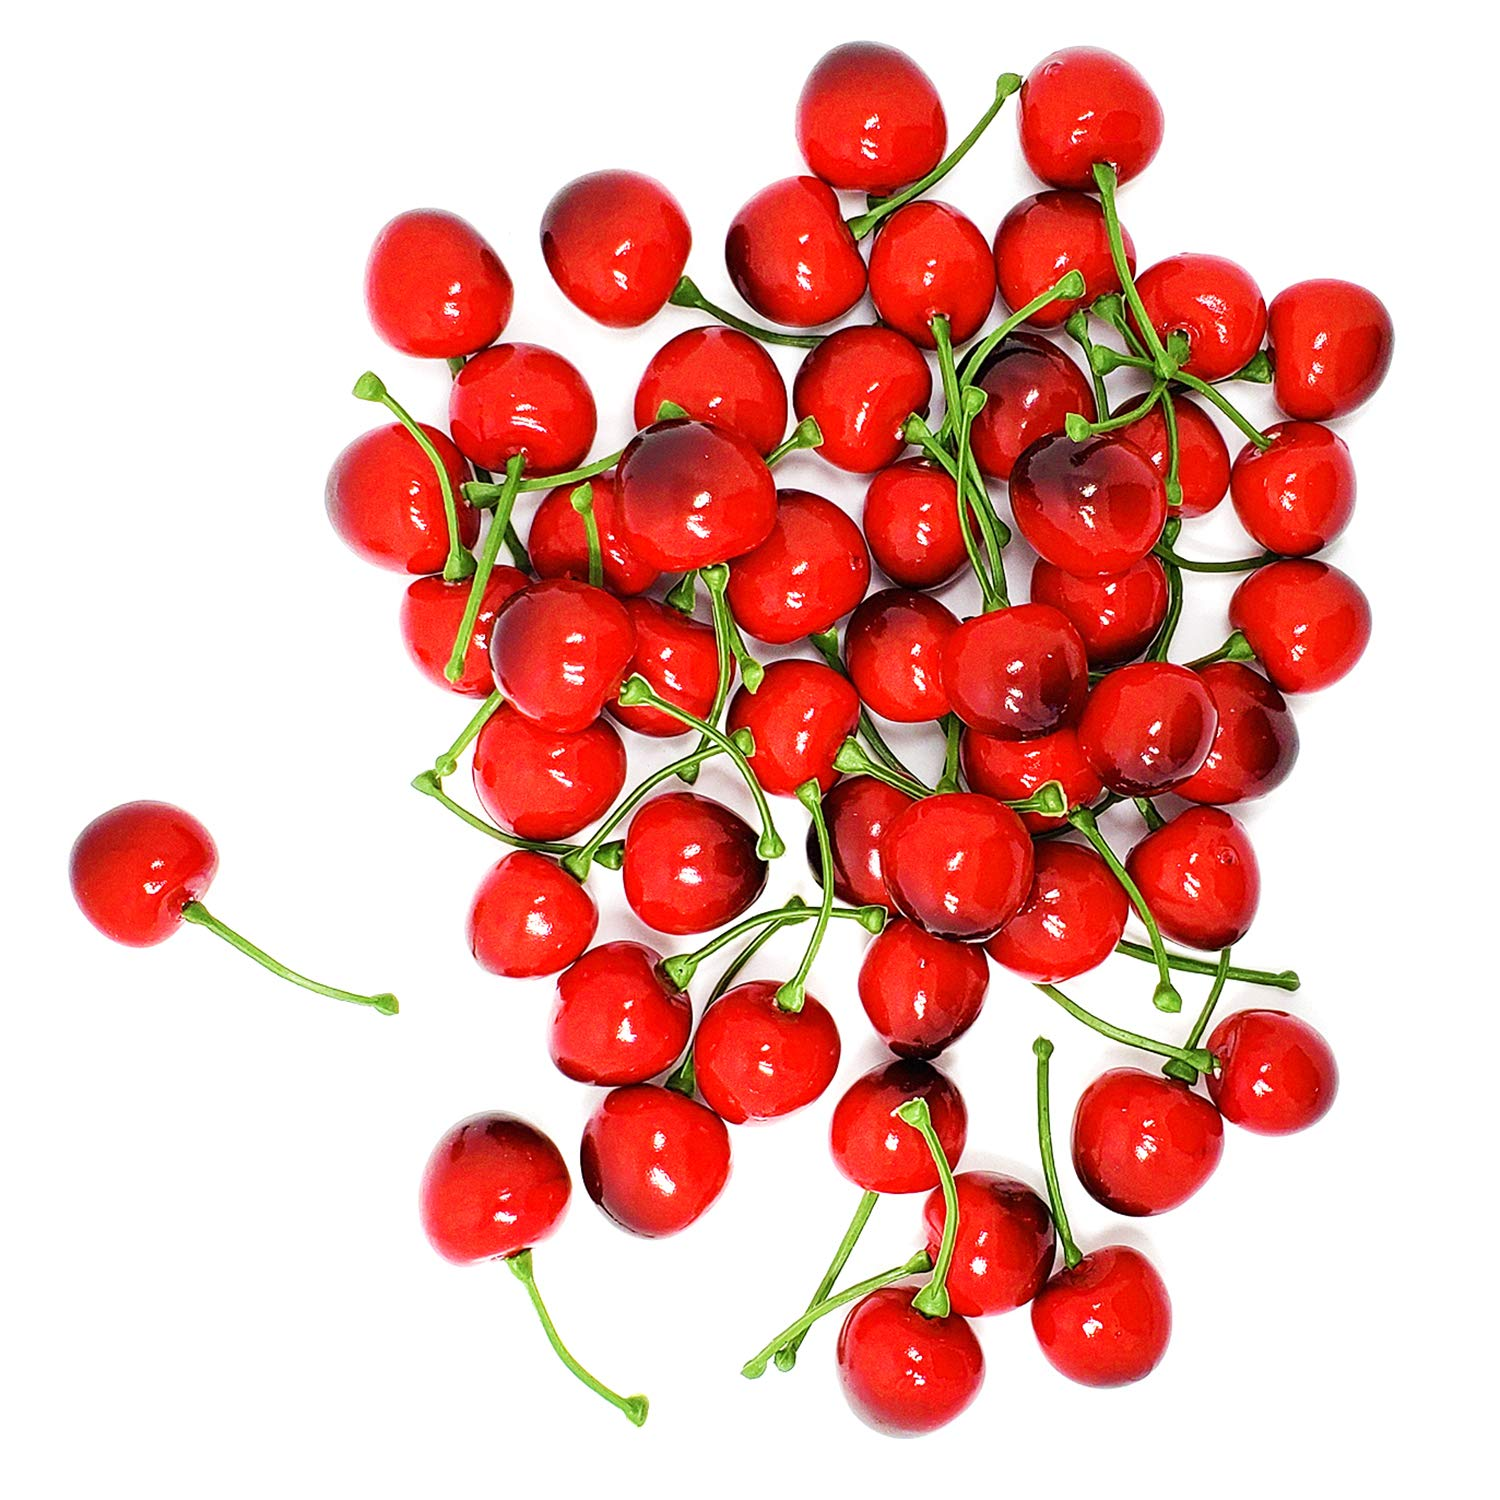 WsCrafts 50Pcs Artificial Lifelike Simulation Cherries for Home Decoration 25mm, red Black Simulation Fruit Kitchen Decoration Christmas Display